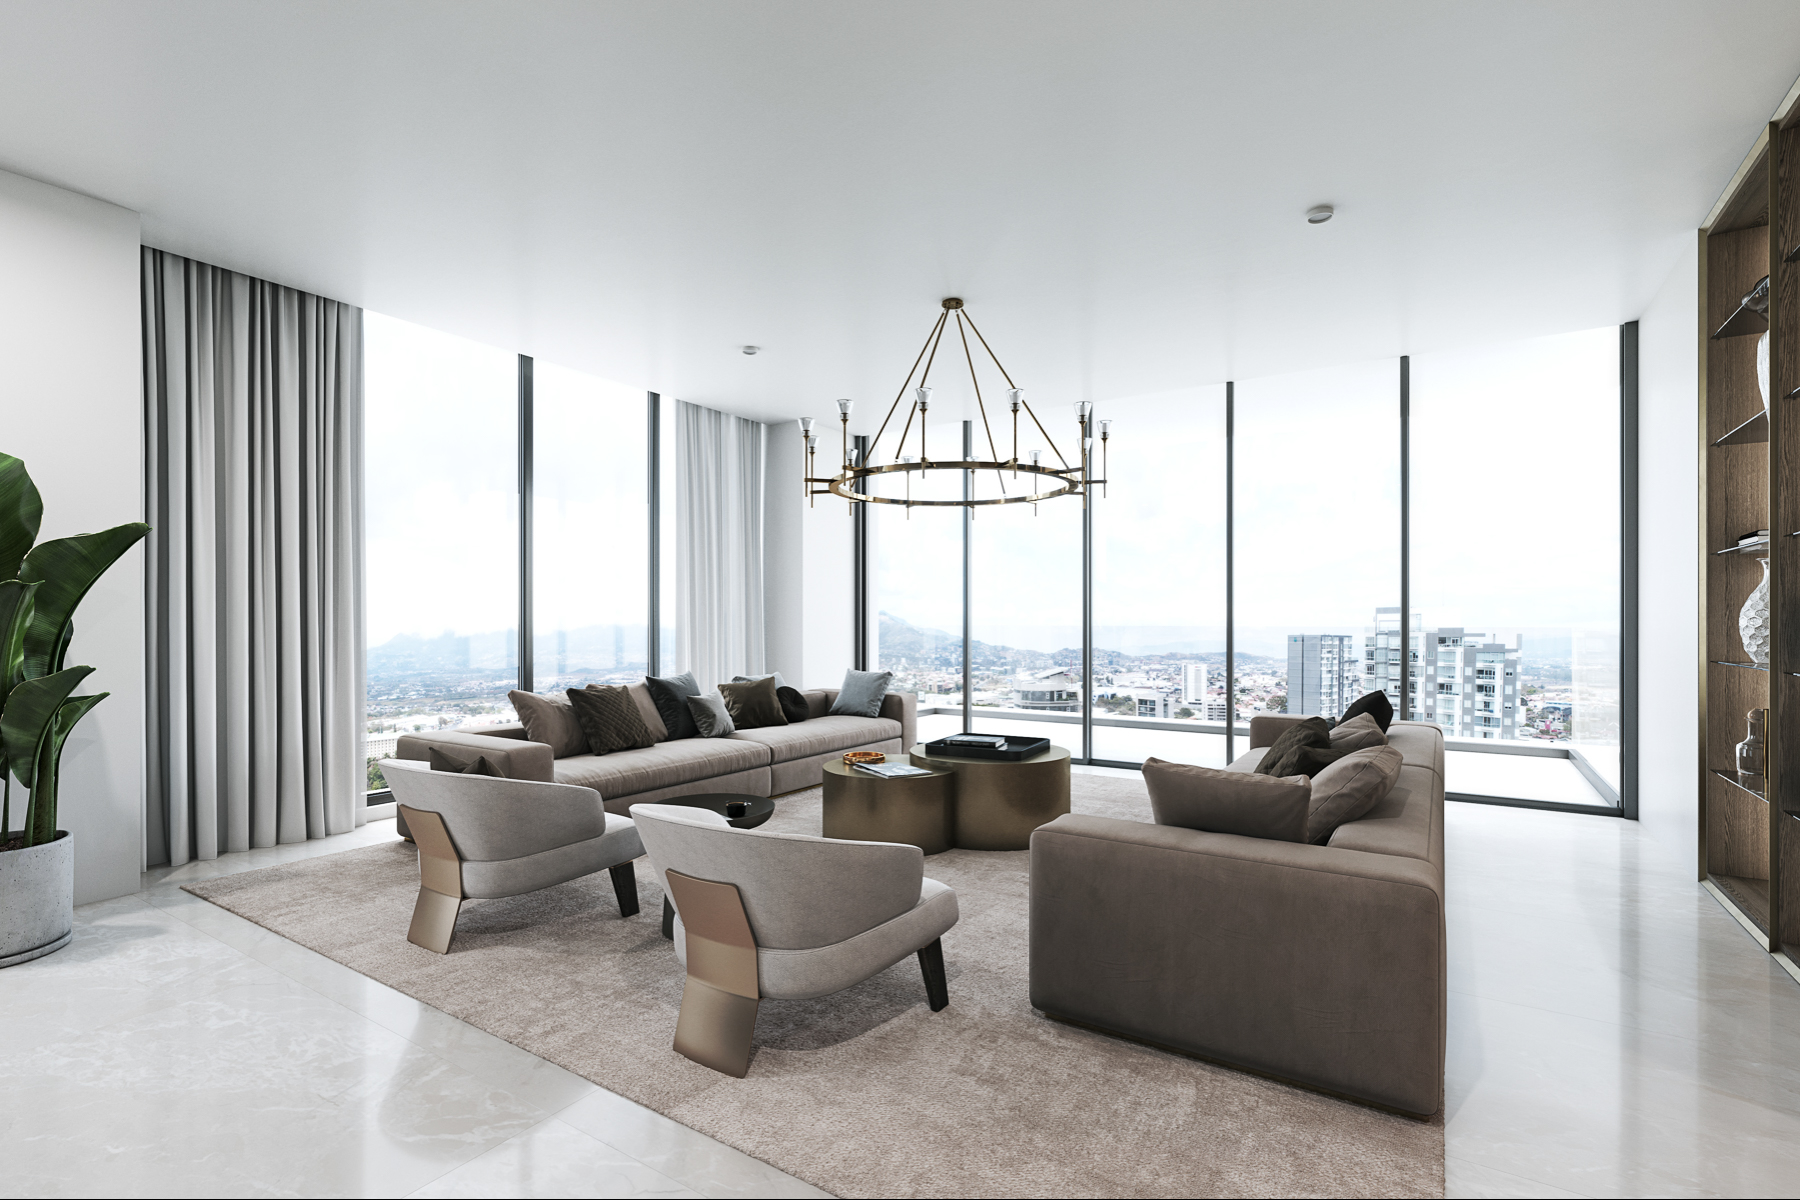 Apartments for Sale at Spectacular Private Luxury Apartments in the Heart of Everything Rohrmoser, San Jose Costa Rica